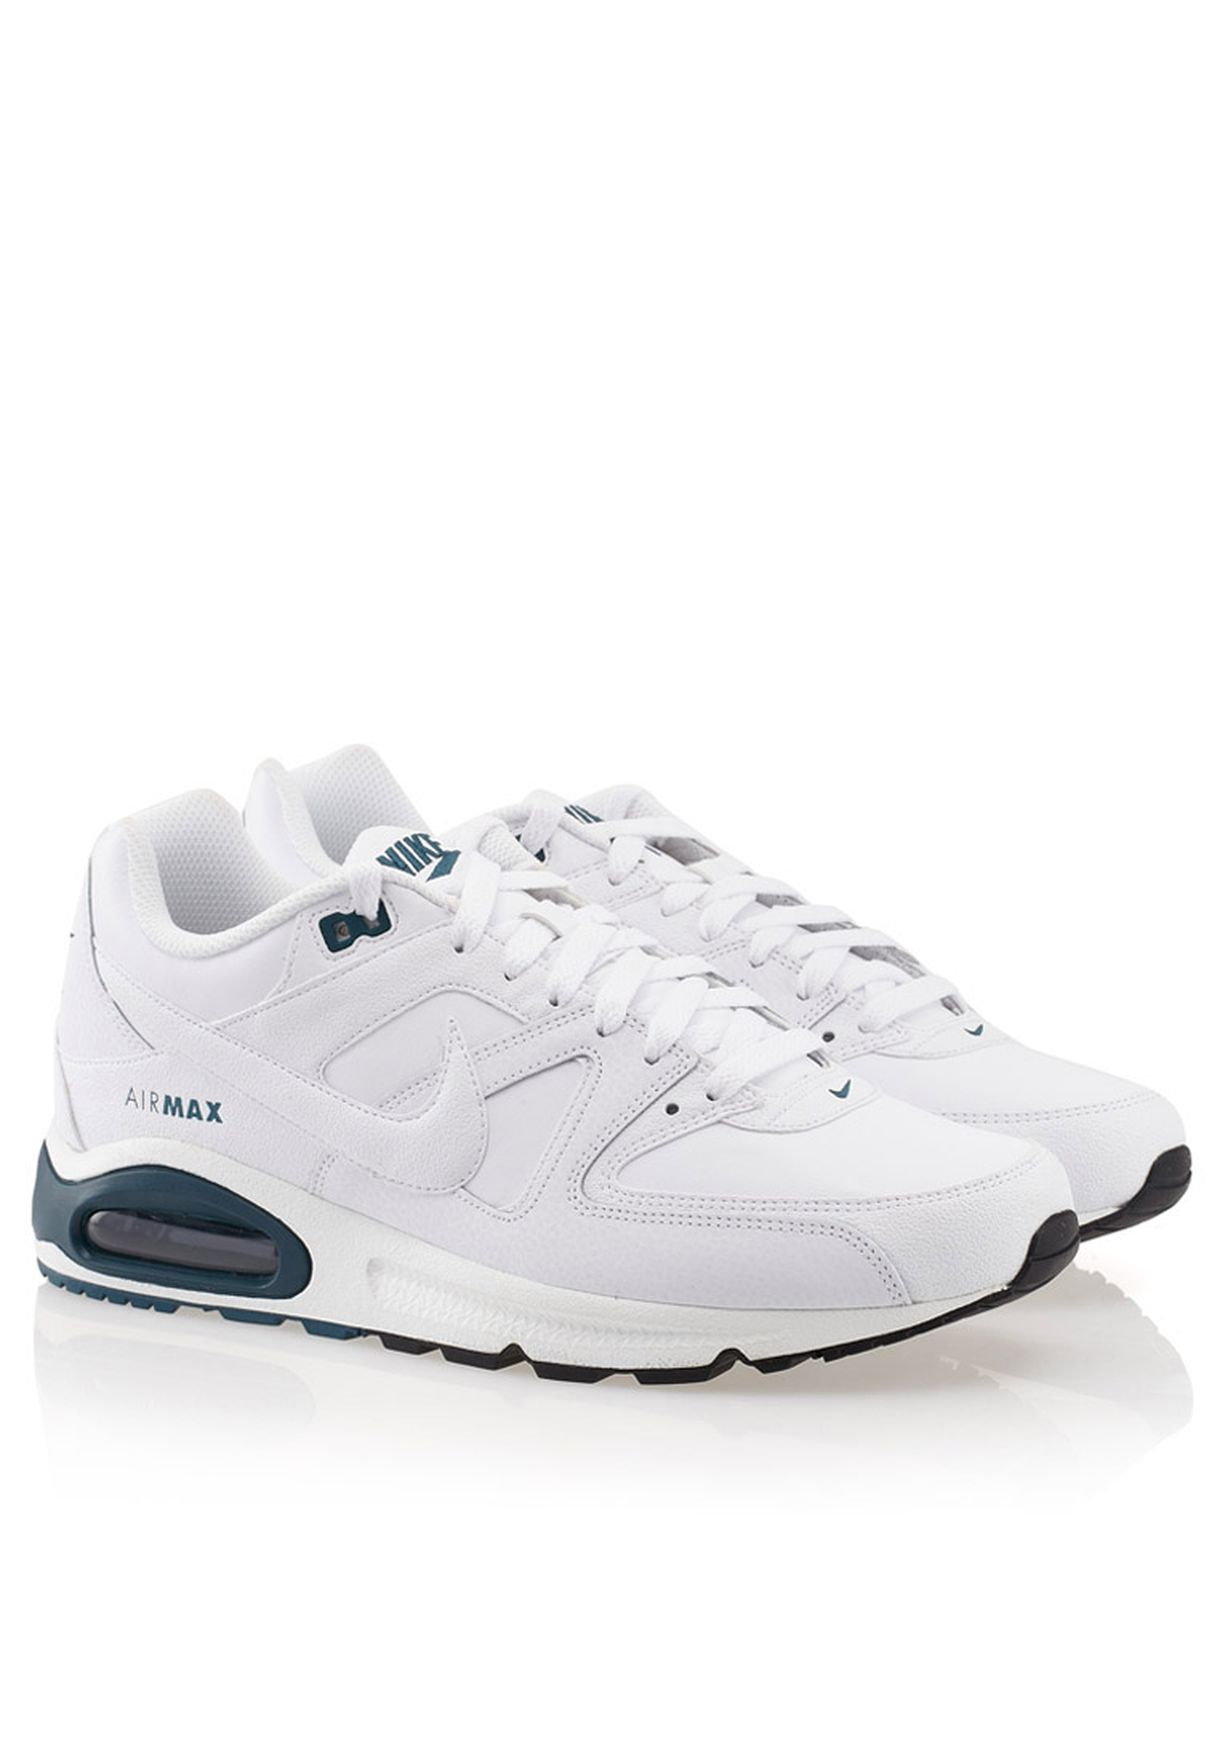 on sale c4234 b620e Air Max Command Leather